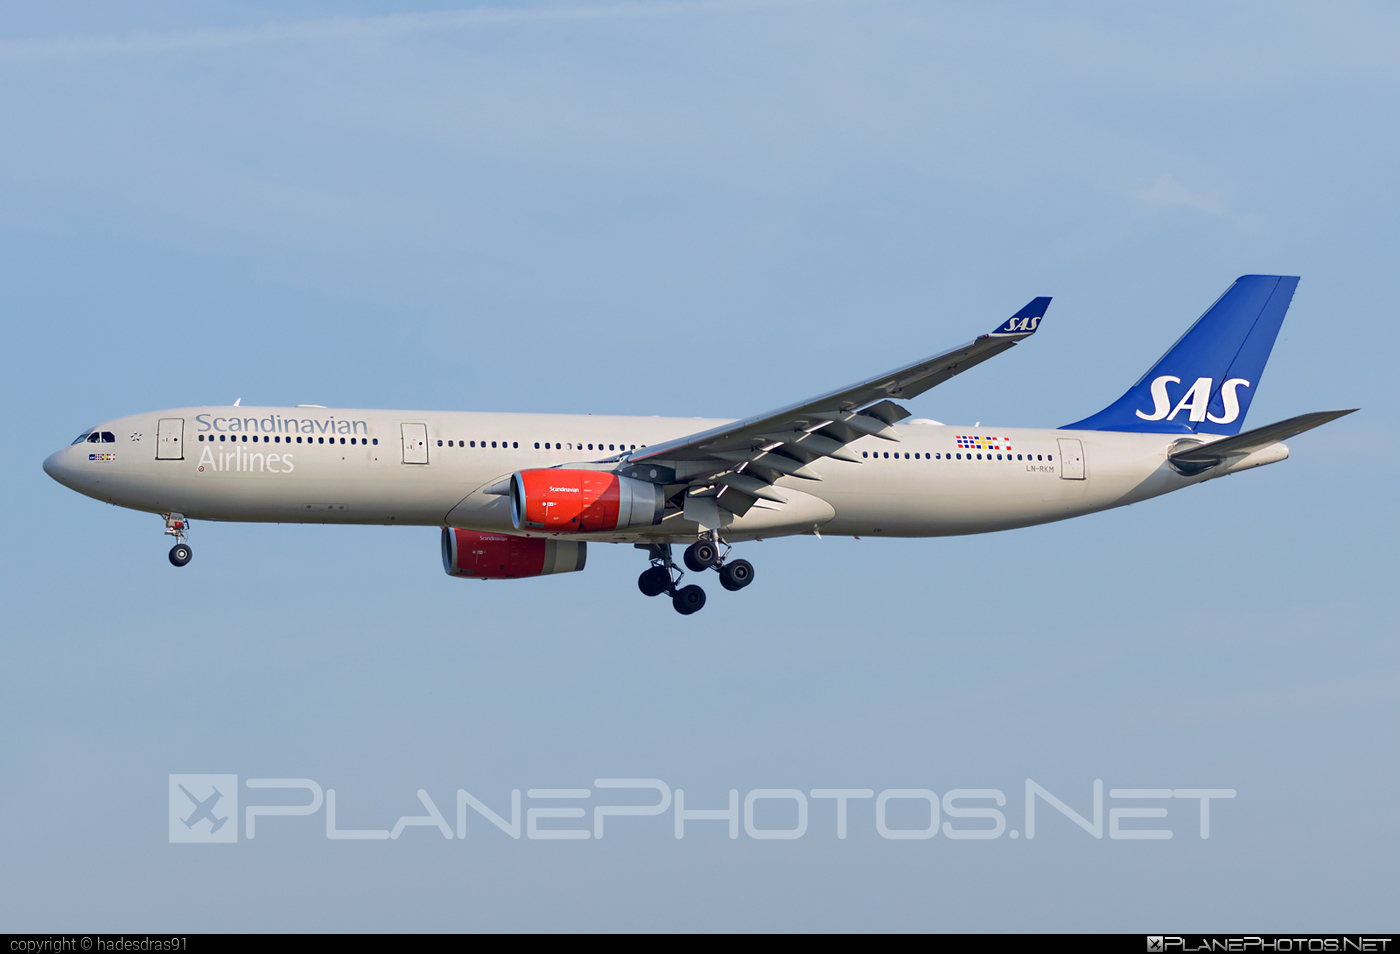 Airbus A330-343 - LN-RKM operated by Scandinavian Airlines (SAS) #a330 #a330family #airbus #airbus330 #sas #sasairlines #scandinavianairlines